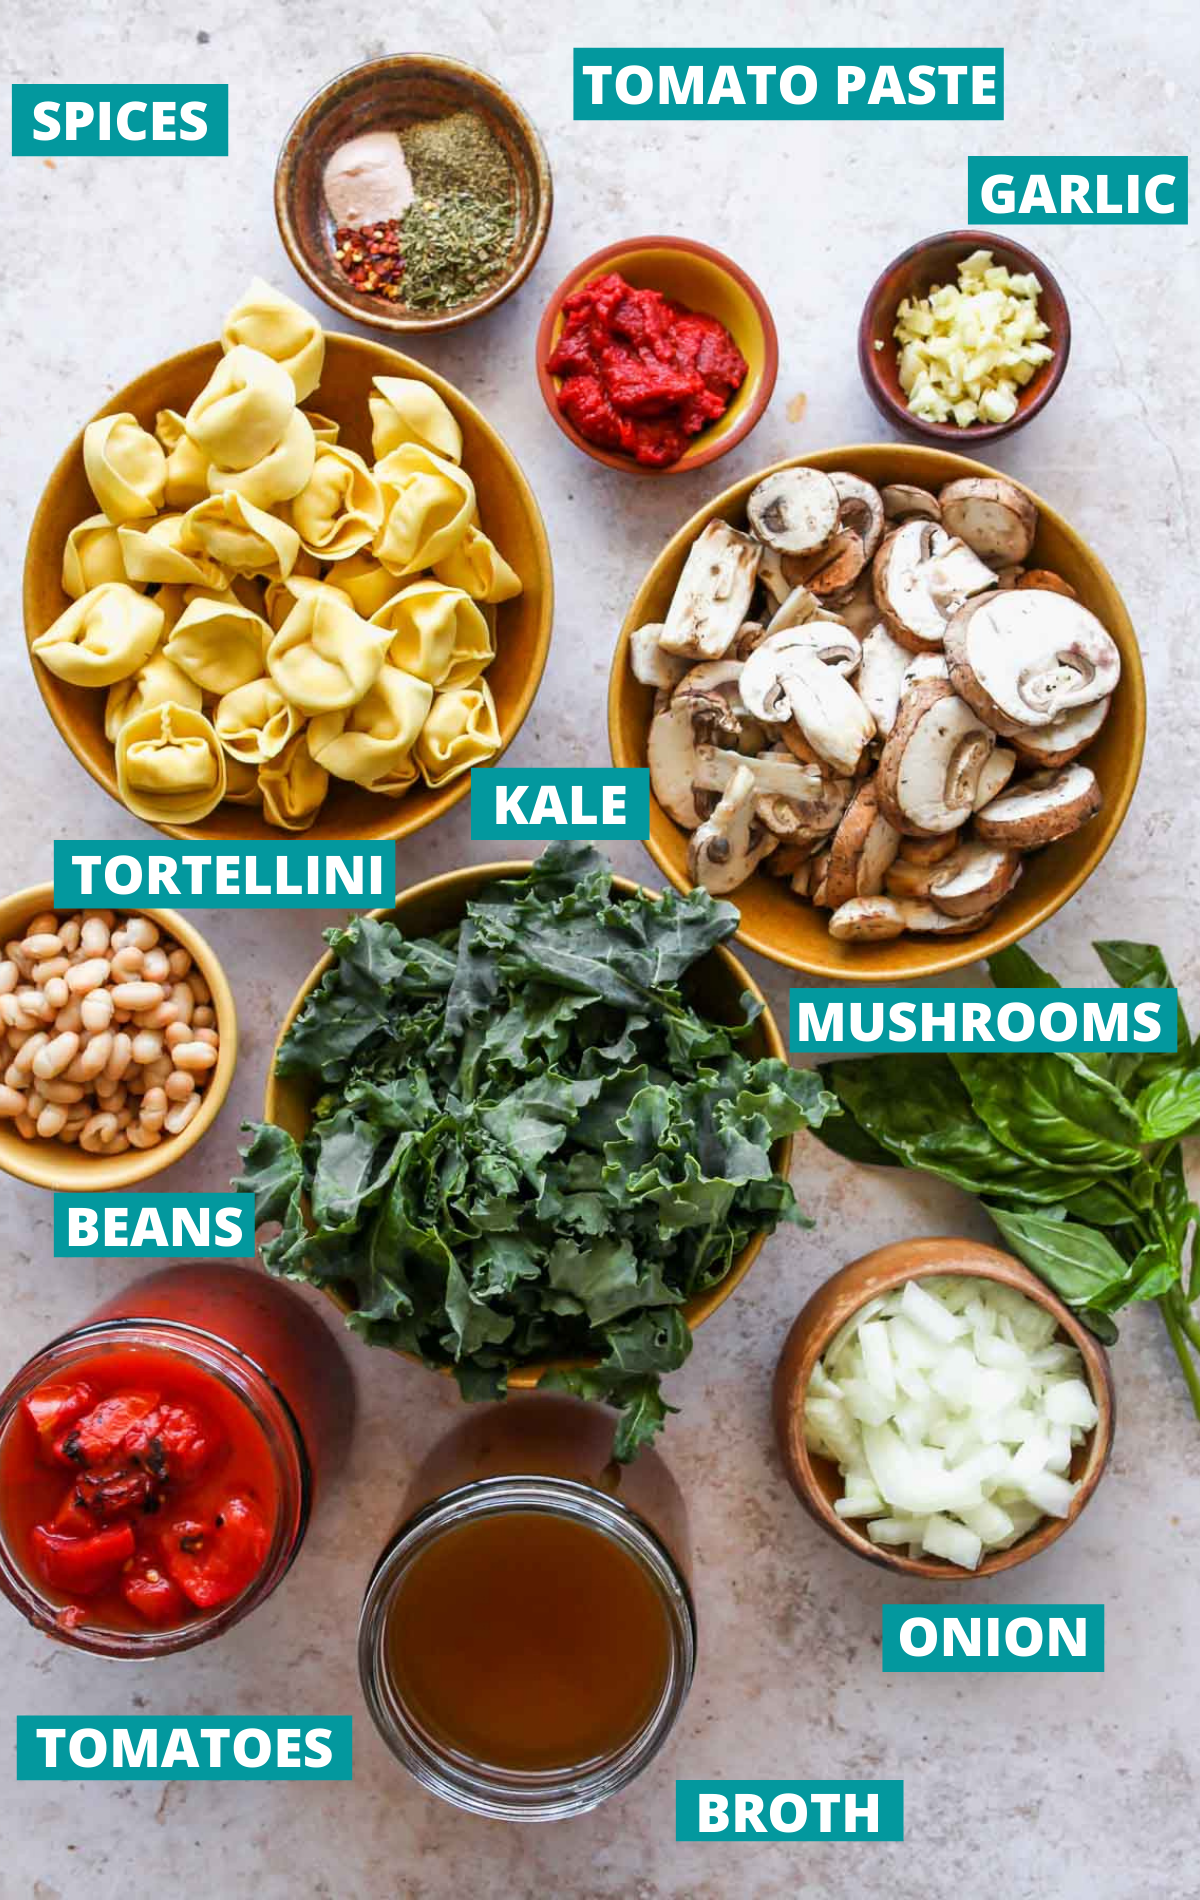 Tortellini soup ingredients in separate bowls with blue labels